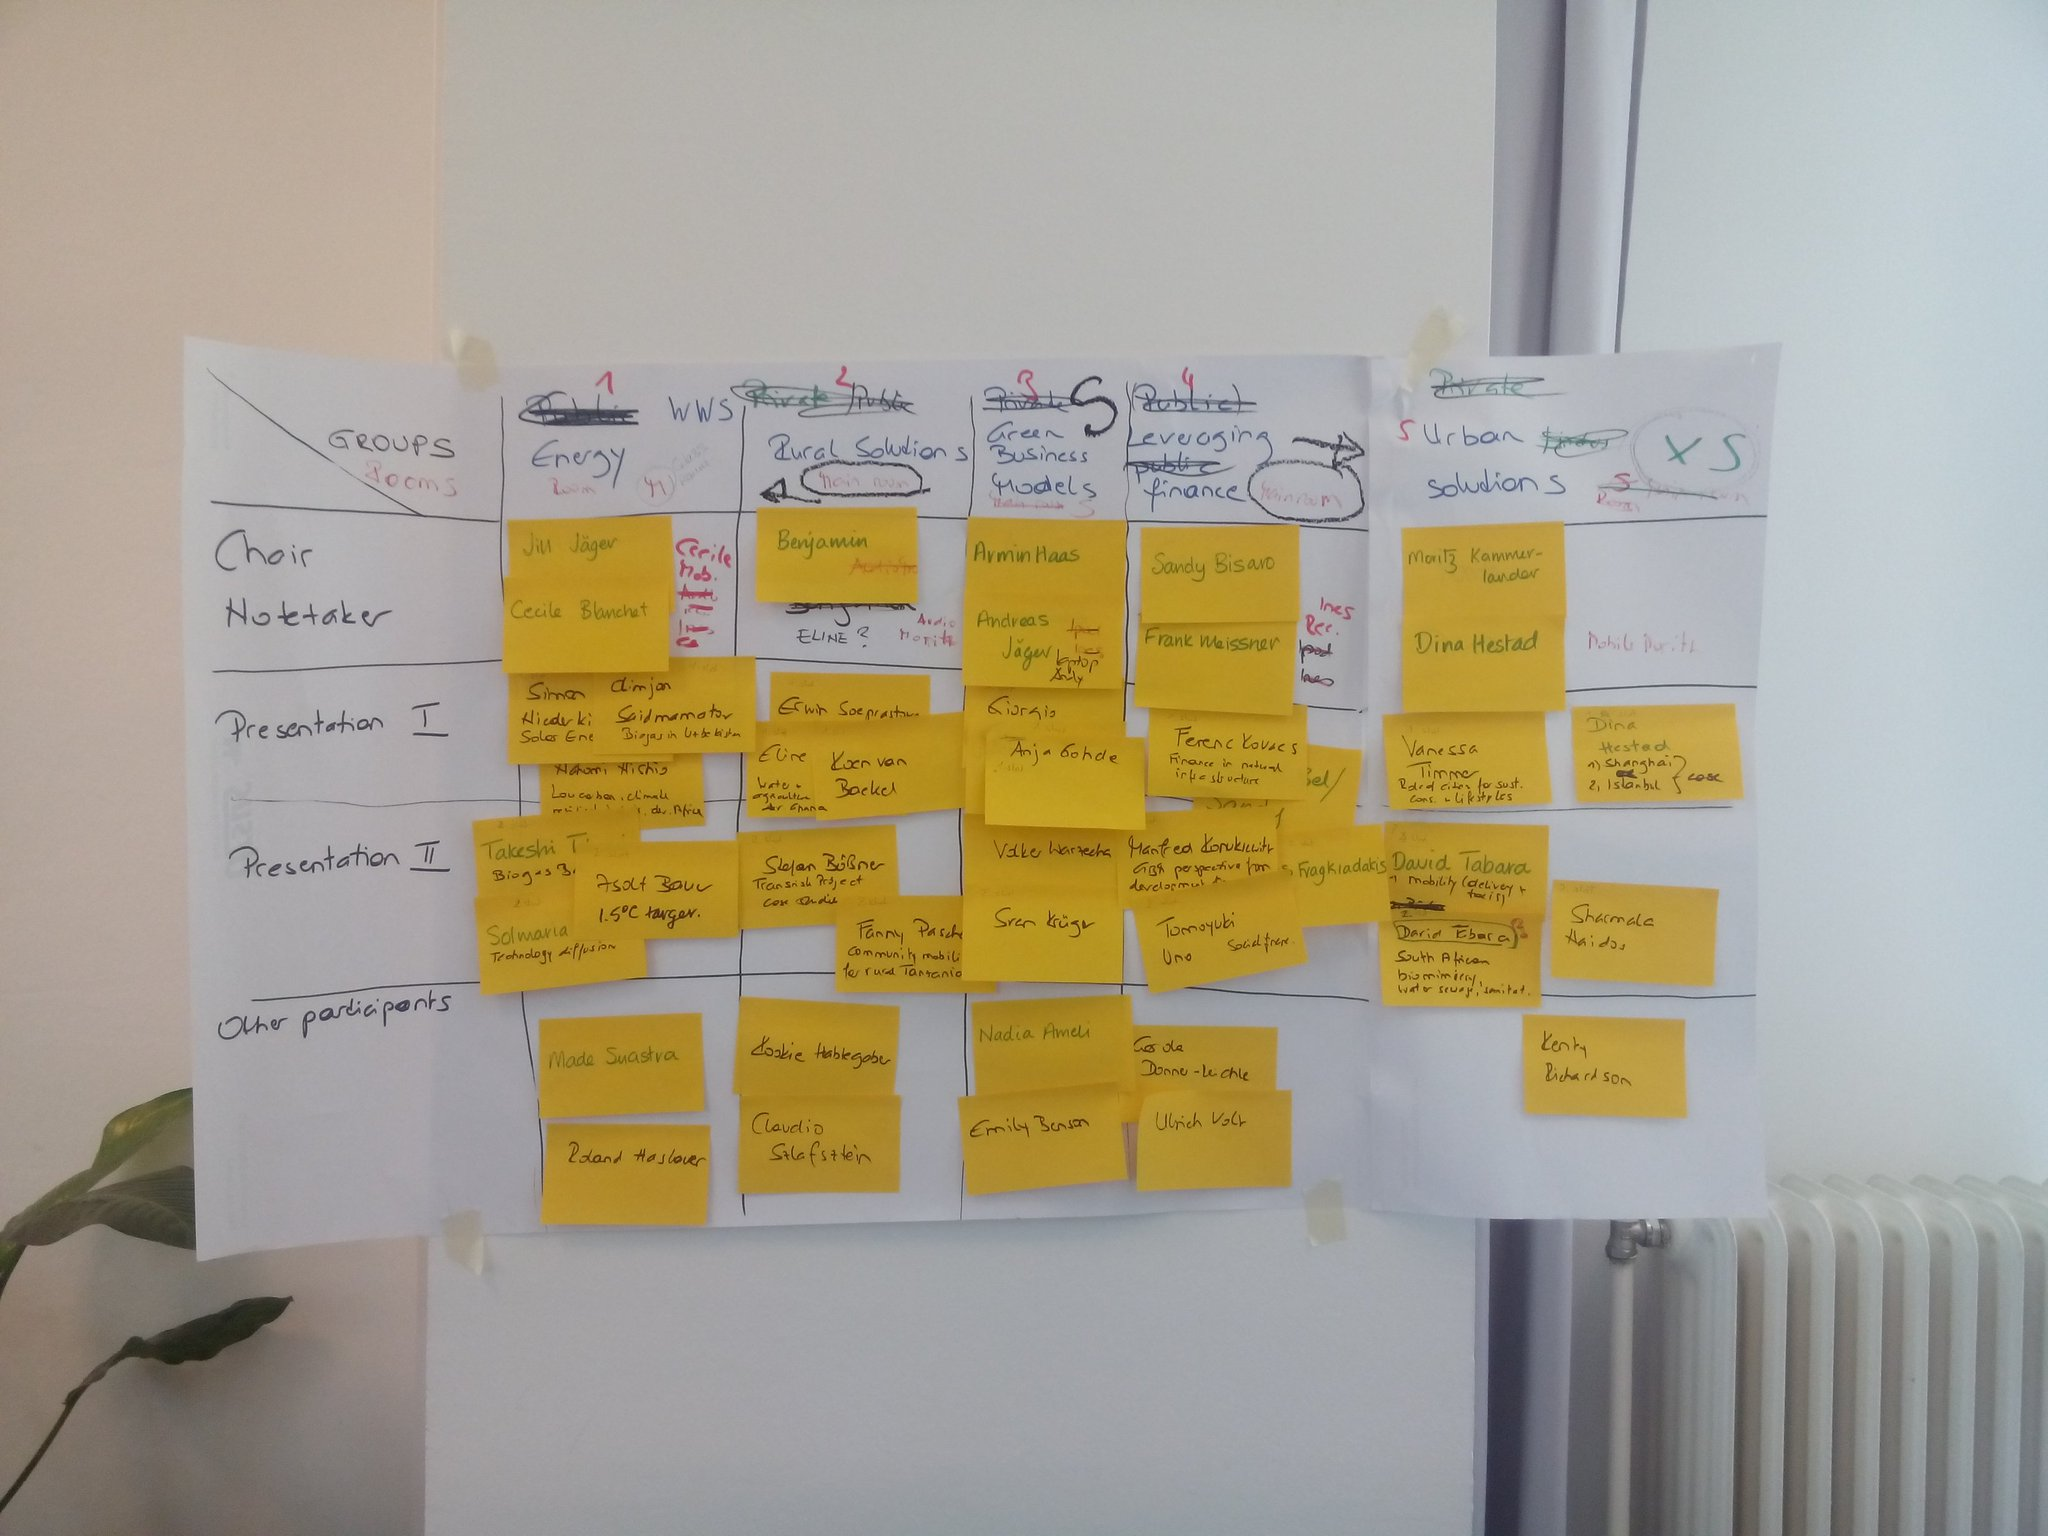 Working groups at #DialogueWorshop: energy, green business models, leveraging finance, rural, urban solutions #GreenWinProject @jaeger_jill https://t.co/J9IssvL0oC